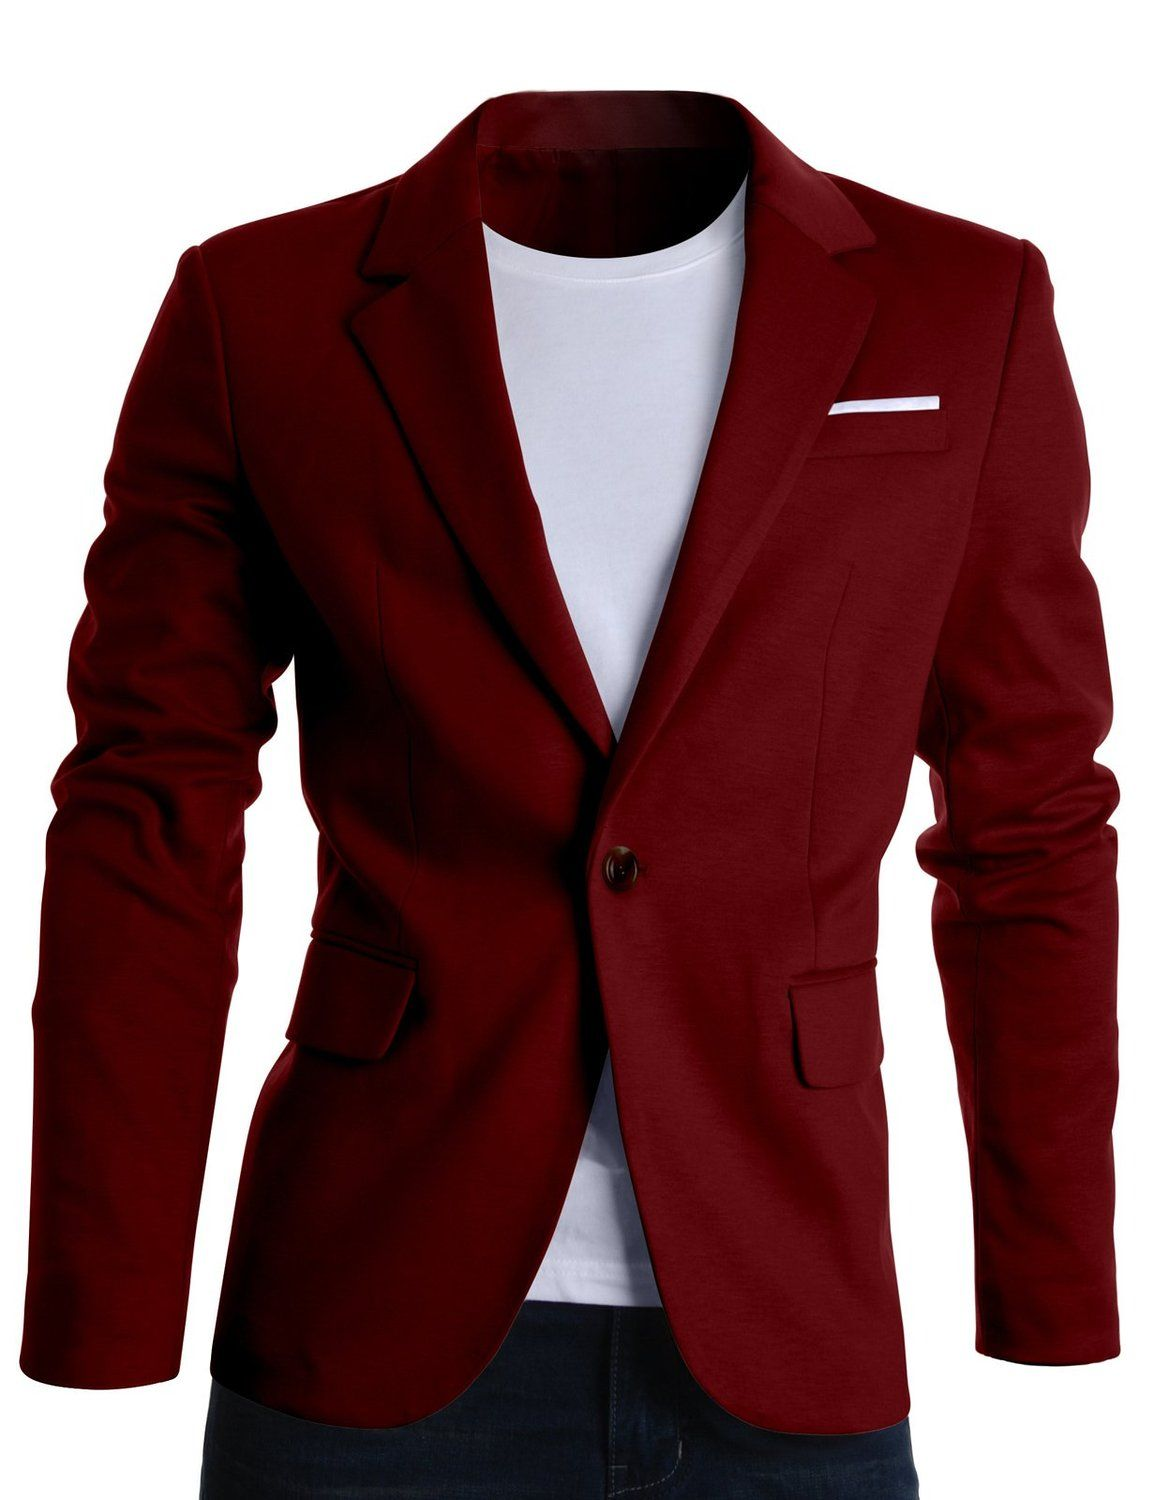 381e30a50c17 FLATSEVEN Mens Slim Fit Casual Premium Blazer Jacket at Amazon Men s  Clothing store  Blazers And Sports Jackets